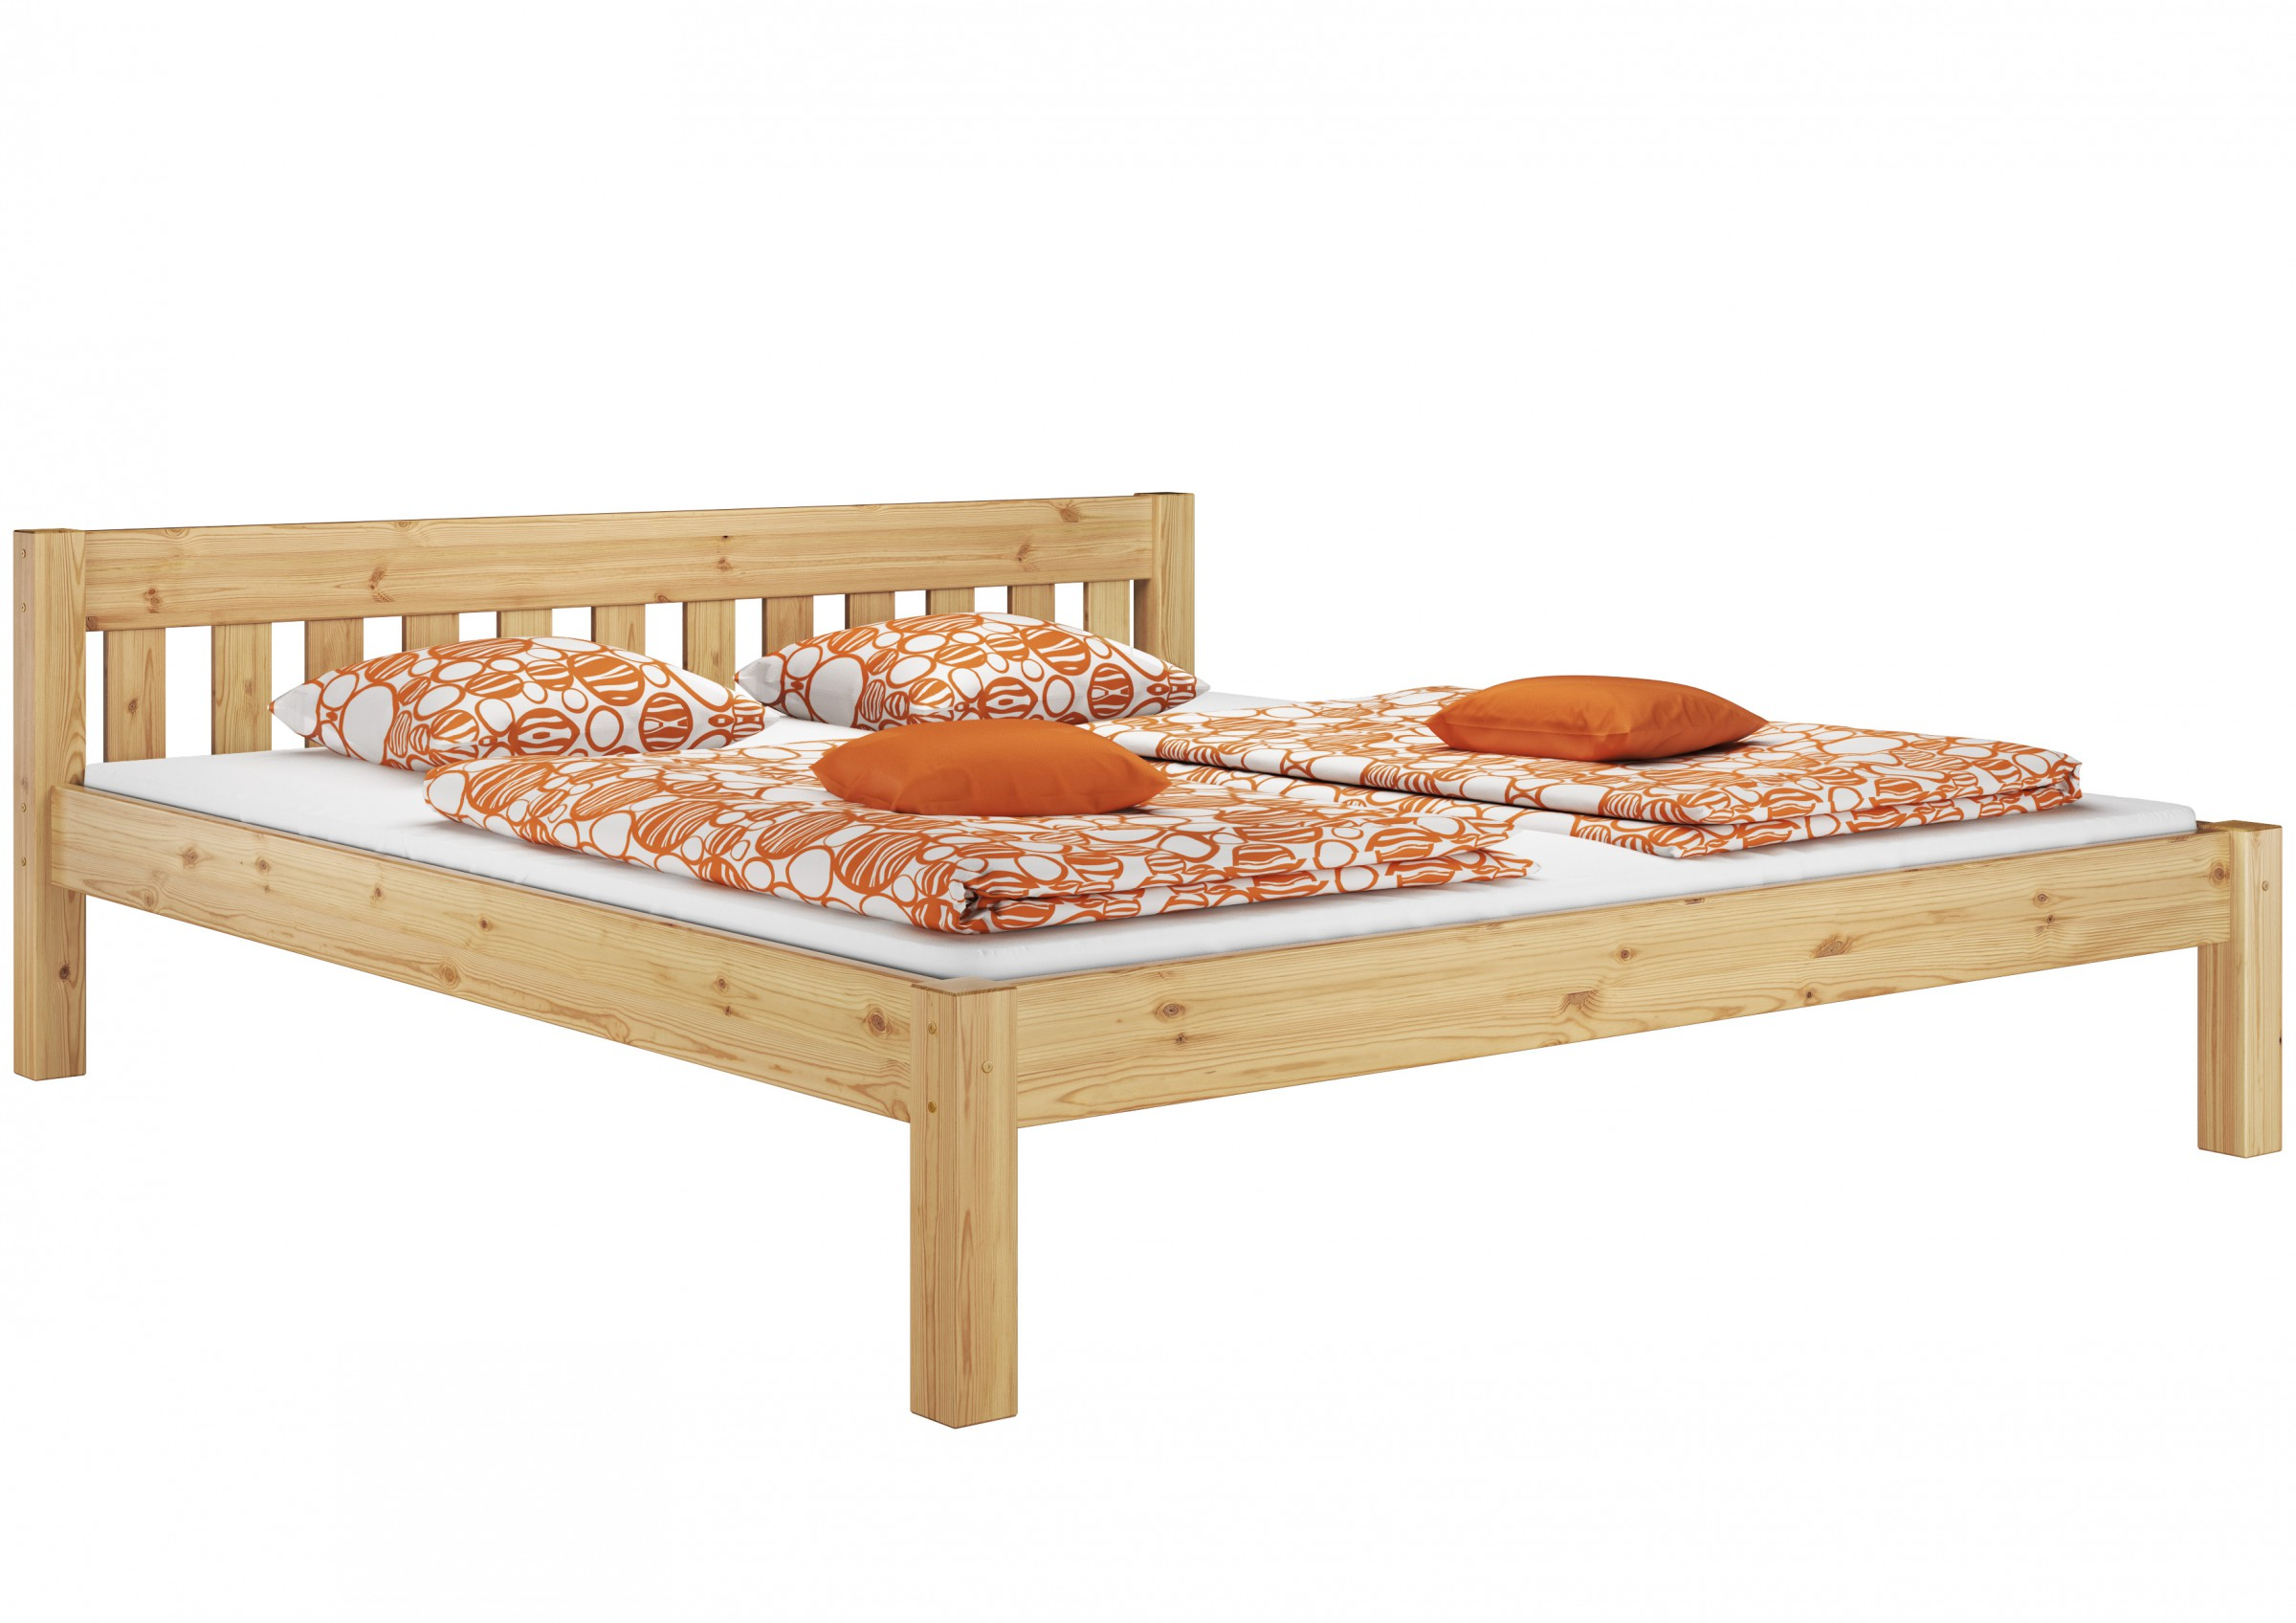 doppelbett futonbett massivholz bett 180x200 cm kiefer natur ebay. Black Bedroom Furniture Sets. Home Design Ideas